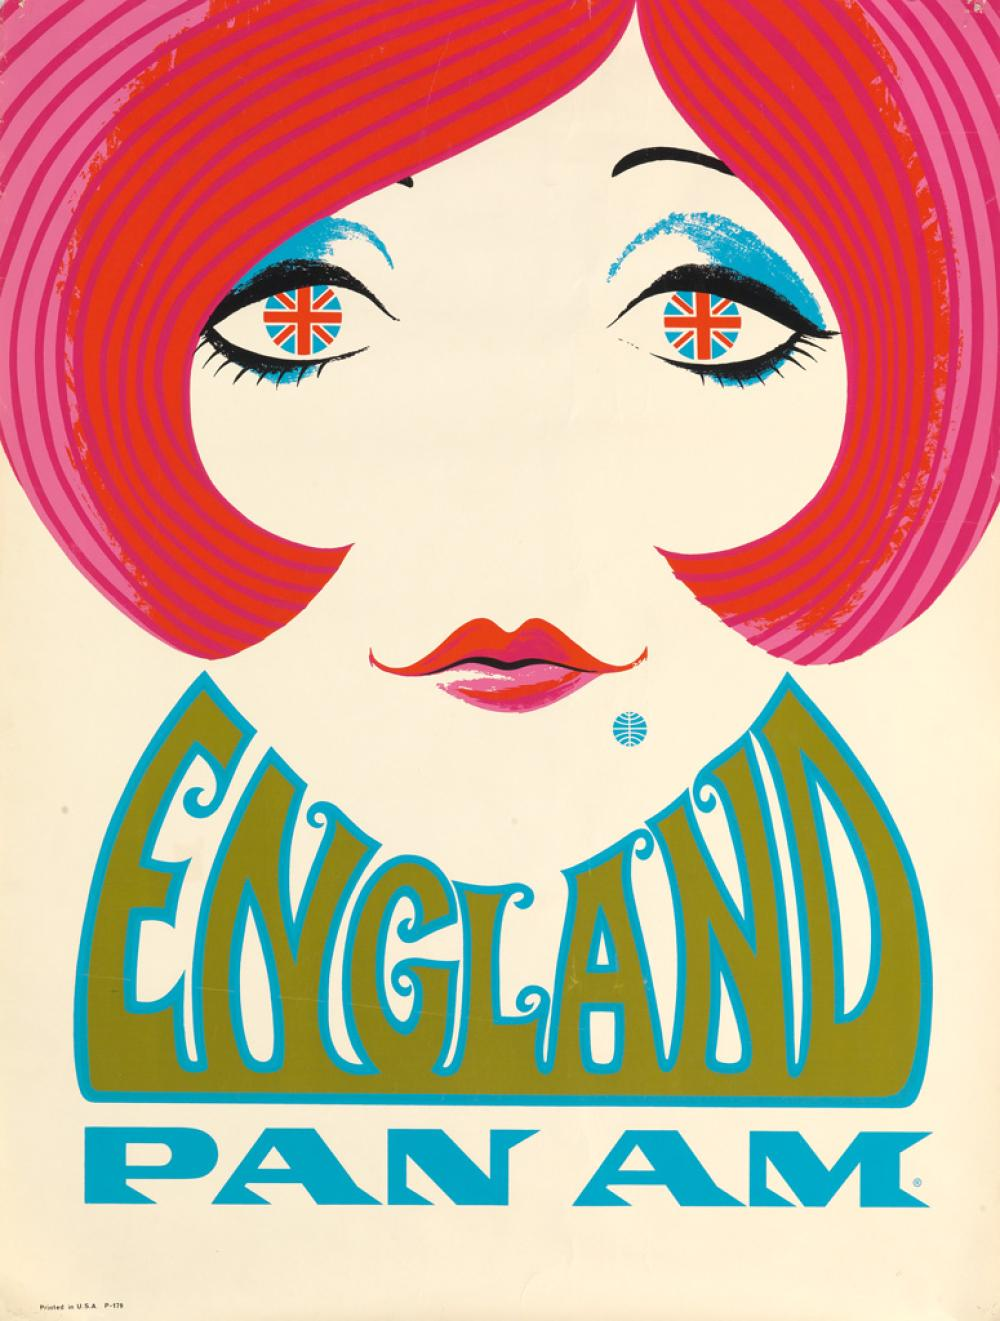 DESIGNER UNKNOWN. ENGLAND / PAN AM. Circa 1969. 37x28 inches, 94x71 cm.